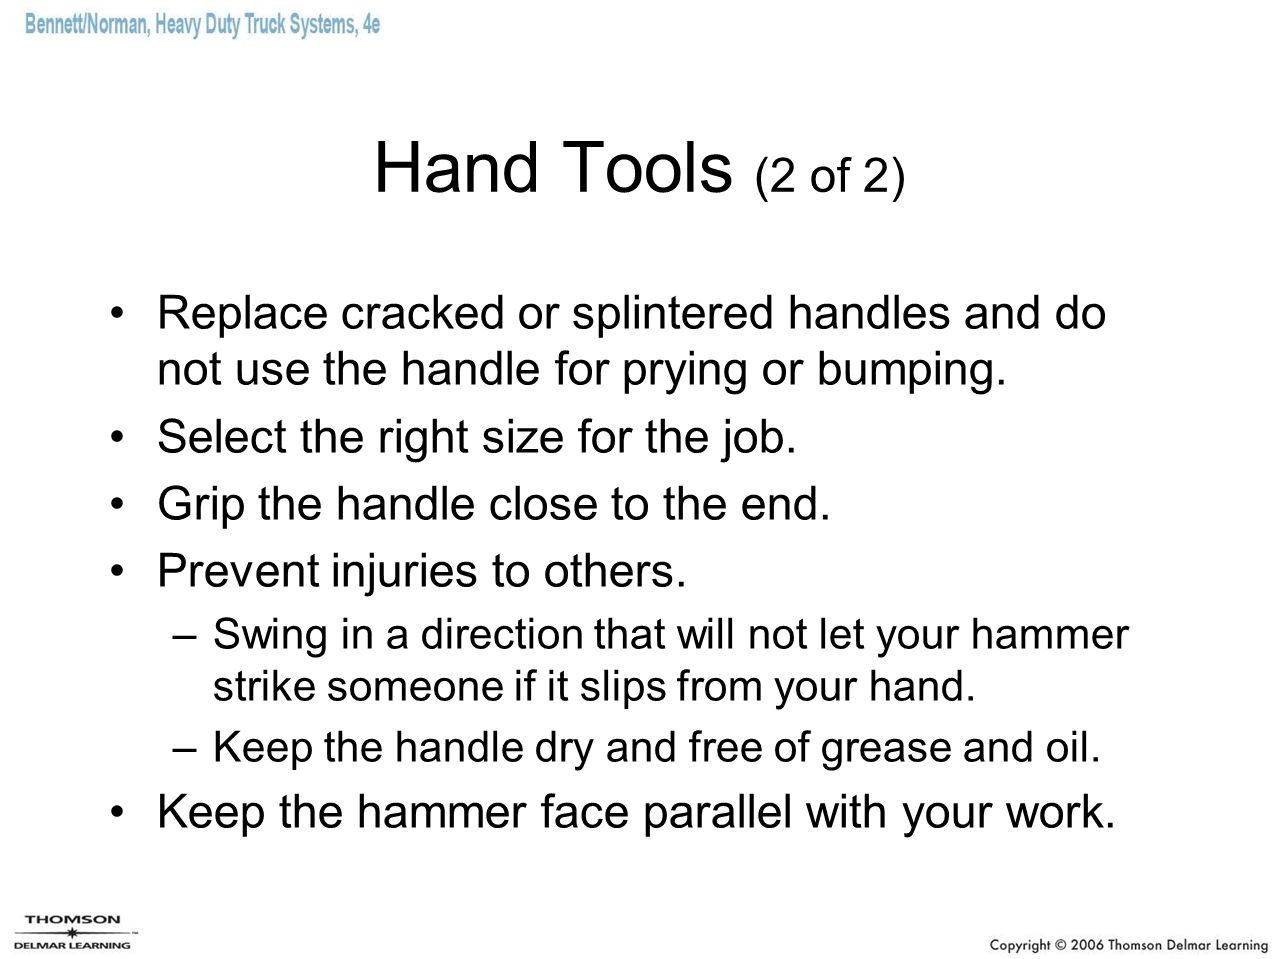 Hand Tools (2 of 2) Replace cracked or splintered handles and do not use the handle for prying or bumping.